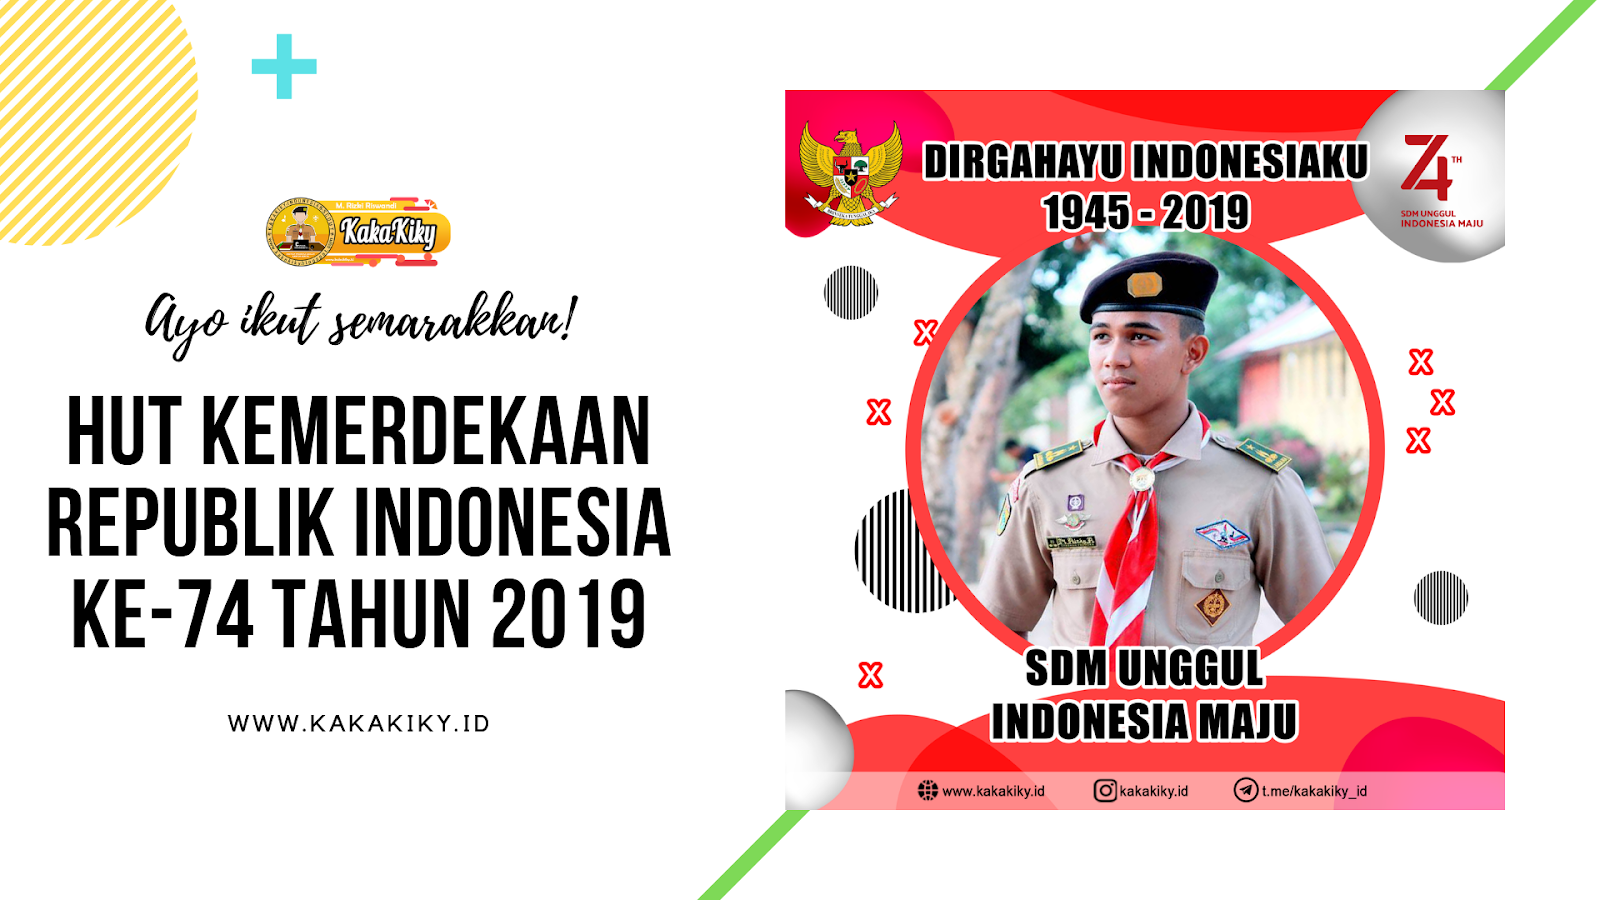 Download Twibbon Bingkai Foto Hut Republik Indonesia Ke 74 Kakakiky Blog Edukasi